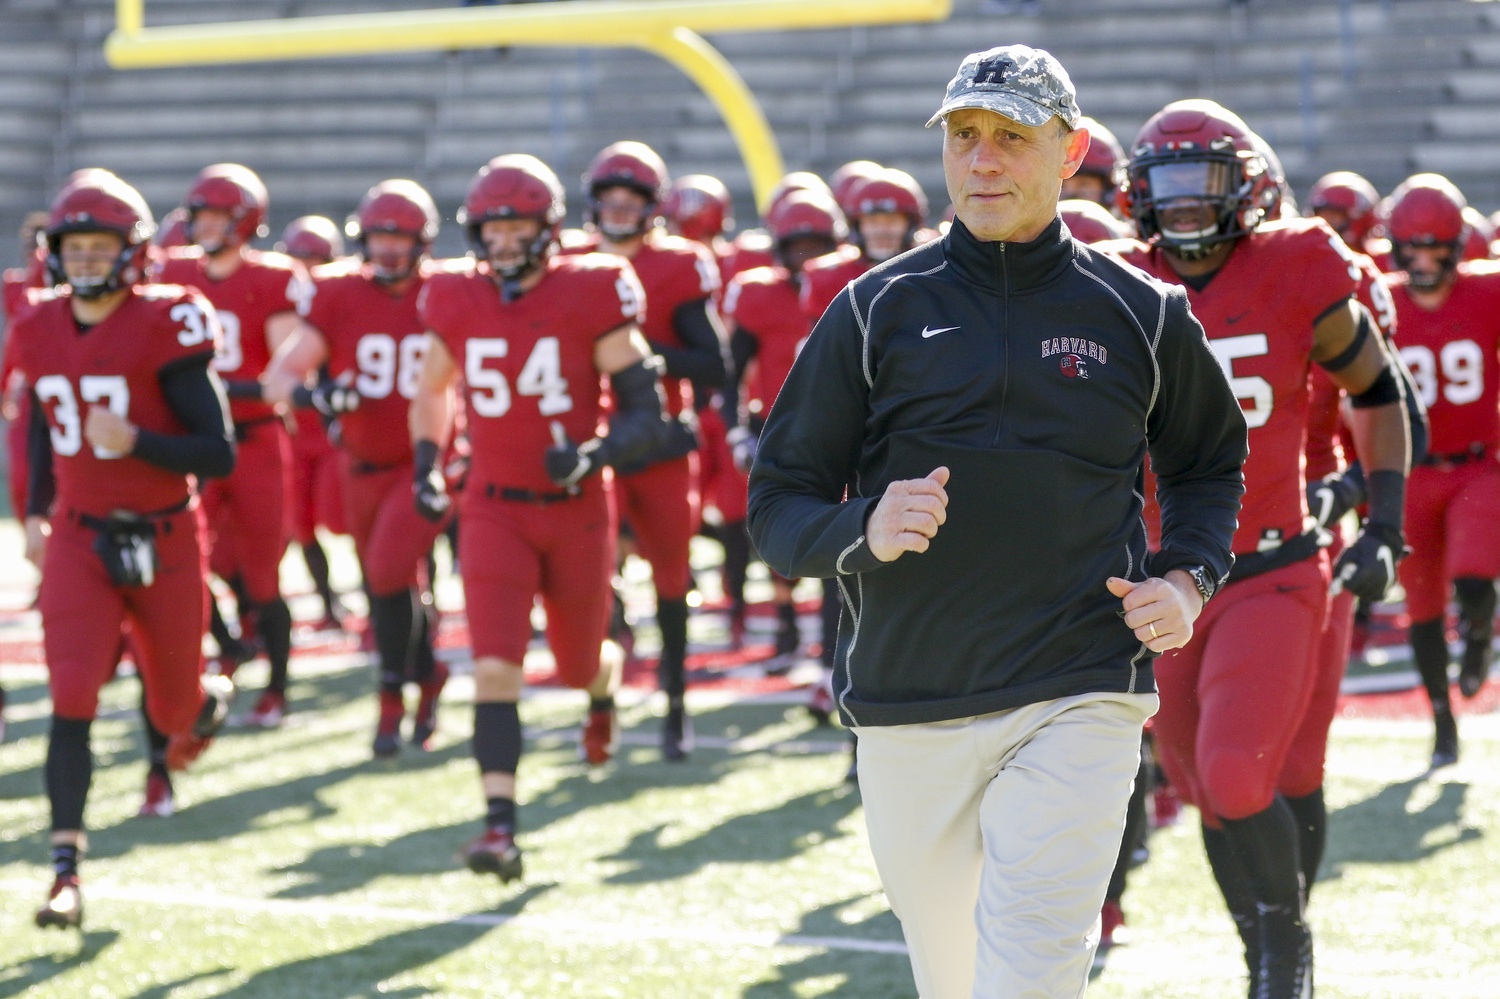 Coach Tim Murphy leads his players onto the field, an exercise he has now performed for the Crimson for 26 years.